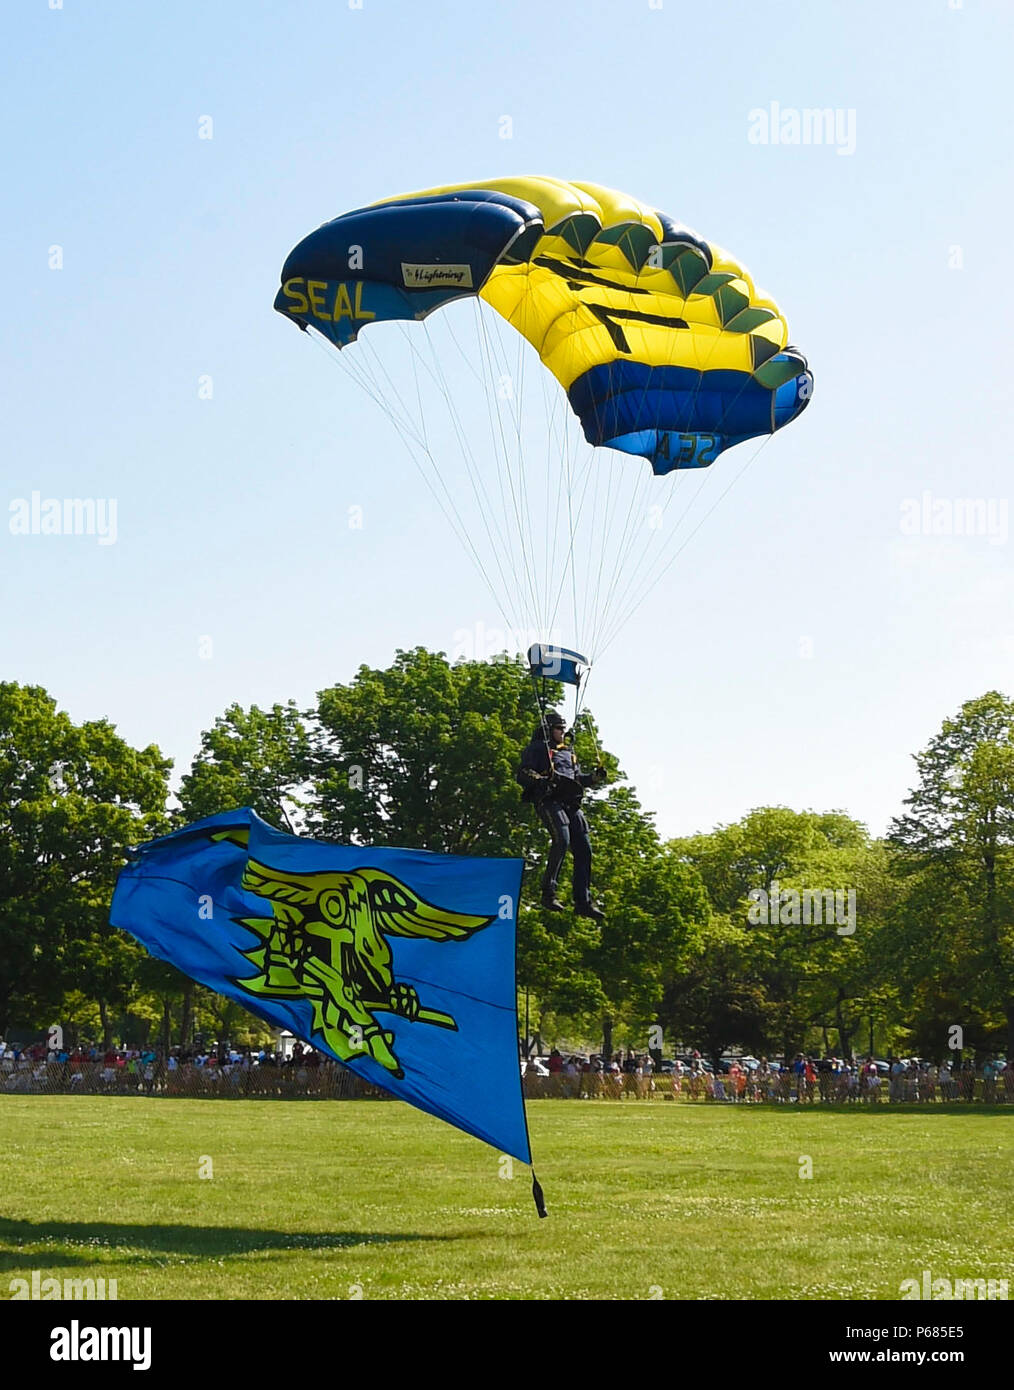 160528-N-VY375-056 EAST MEADOW, N.Y. (May 28, 2016) – Lt. (SEAL) Duncan Hamilton, member of the Navy Parachute Team, the Leap Frogs, prepares to land on the field flying the SEAL trident flag during a skydiving demonstration at Eisenhower Park as part of Fleet Week New York 2016. Fleet Week New York, now in its 28th year, is the city's time-honored celebration of the sea services. It is an opportunity for New York citizens and the surrounding tri-state area to meet Sailors, Marines, and Coast Guardsmen, as well as witness firsthand the latest capabilities of today's maritime services. (U.S. Na Stock Photo